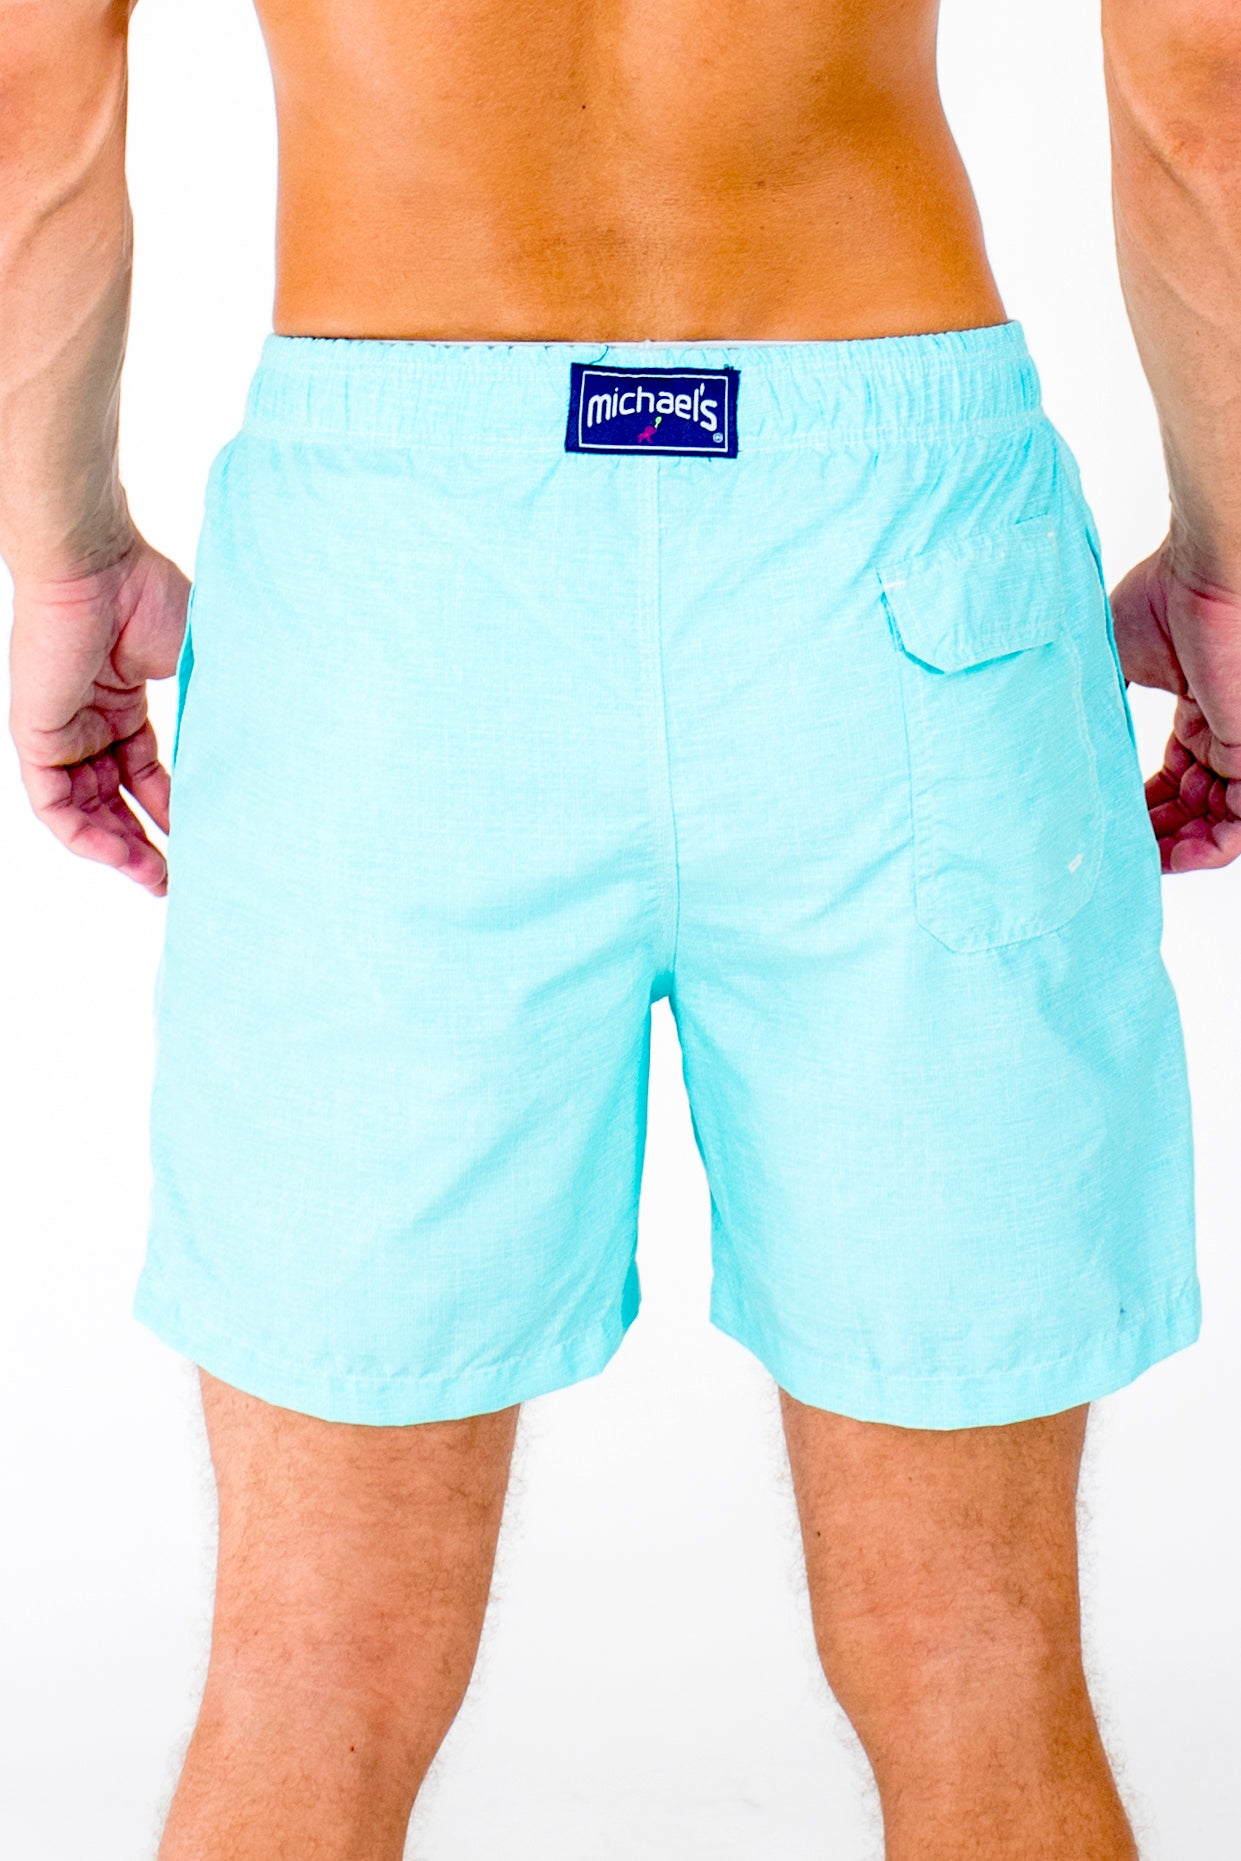 b4dff1ffec9db Men s Solid Linen Print Swim Trunks- Aqua - Michael s Swimwear